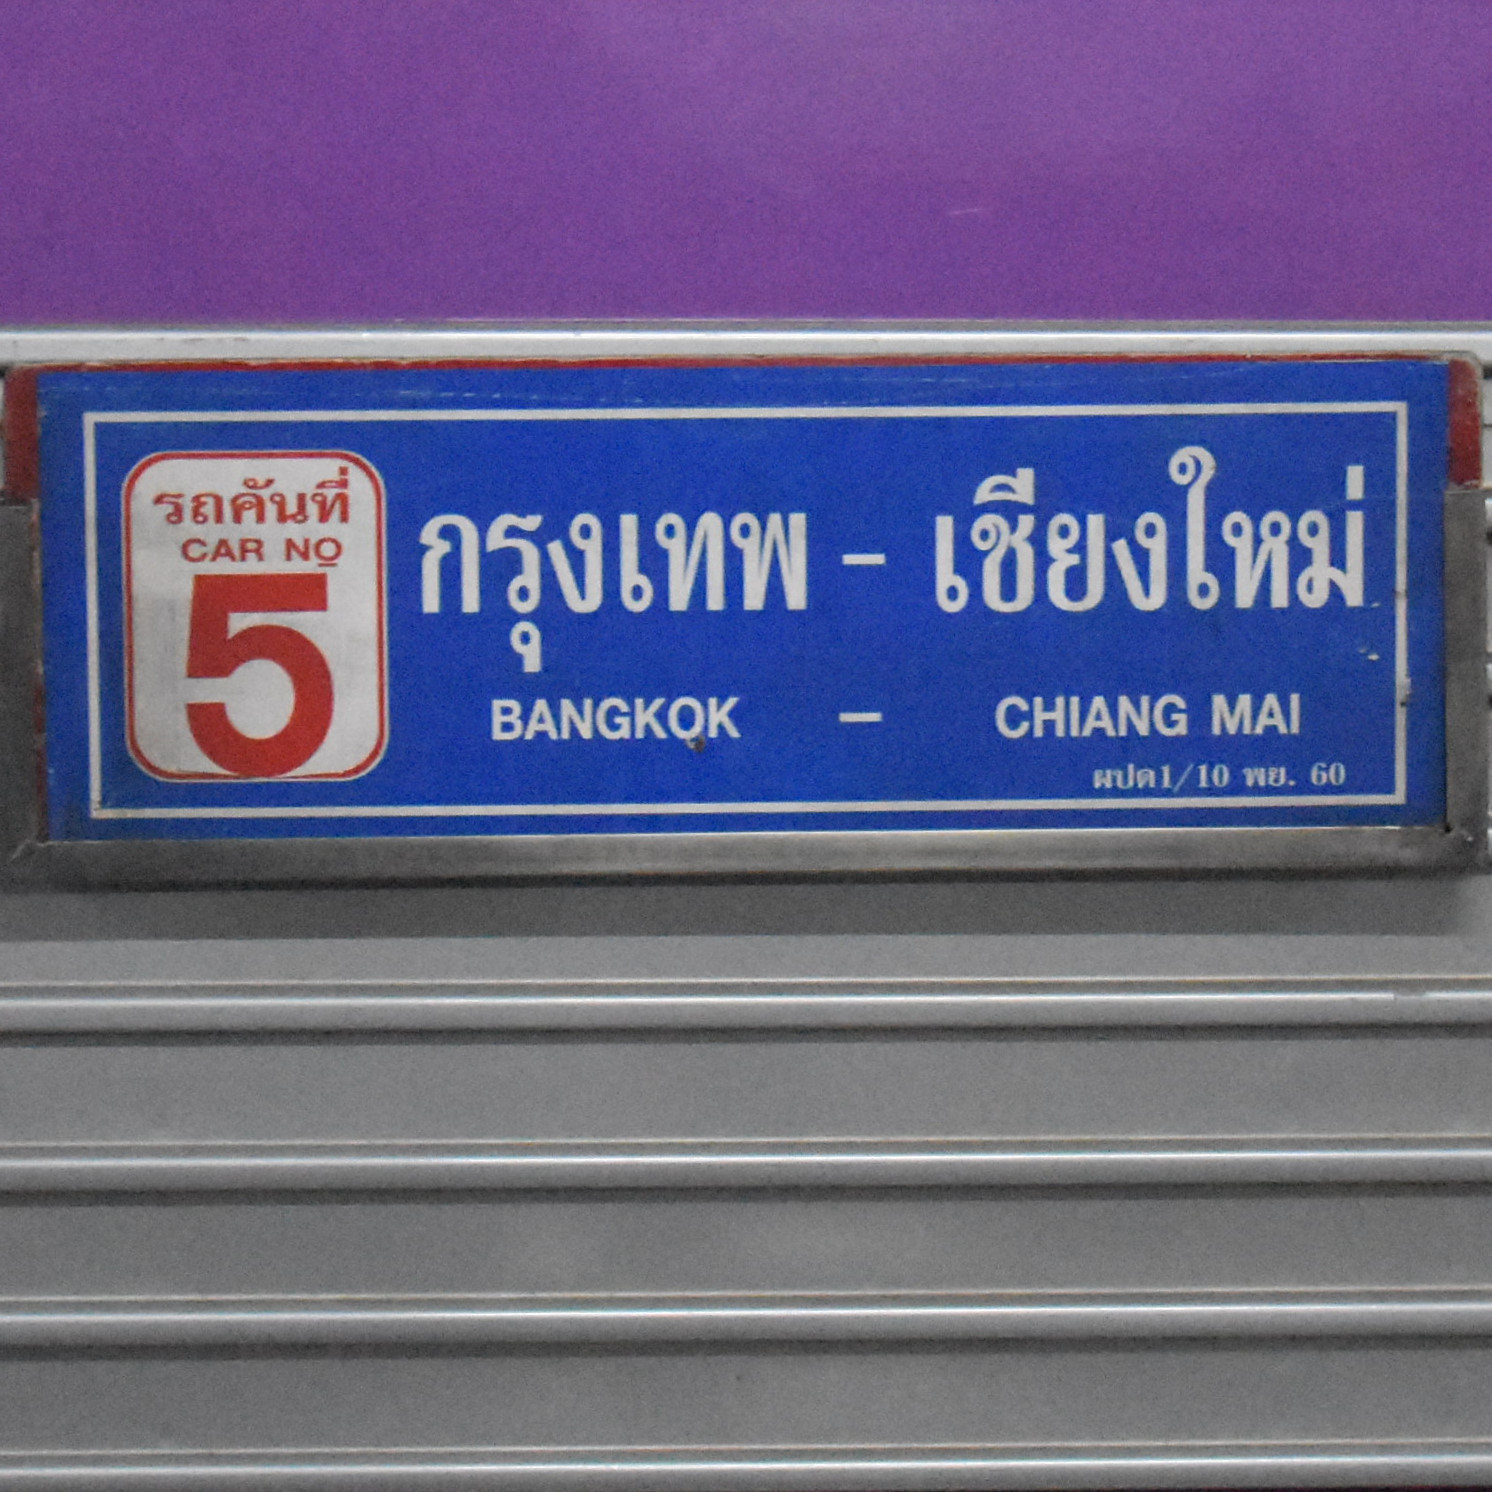 My carriage, number 5, on the sleeper service from Bangkok to Chiang Mai.